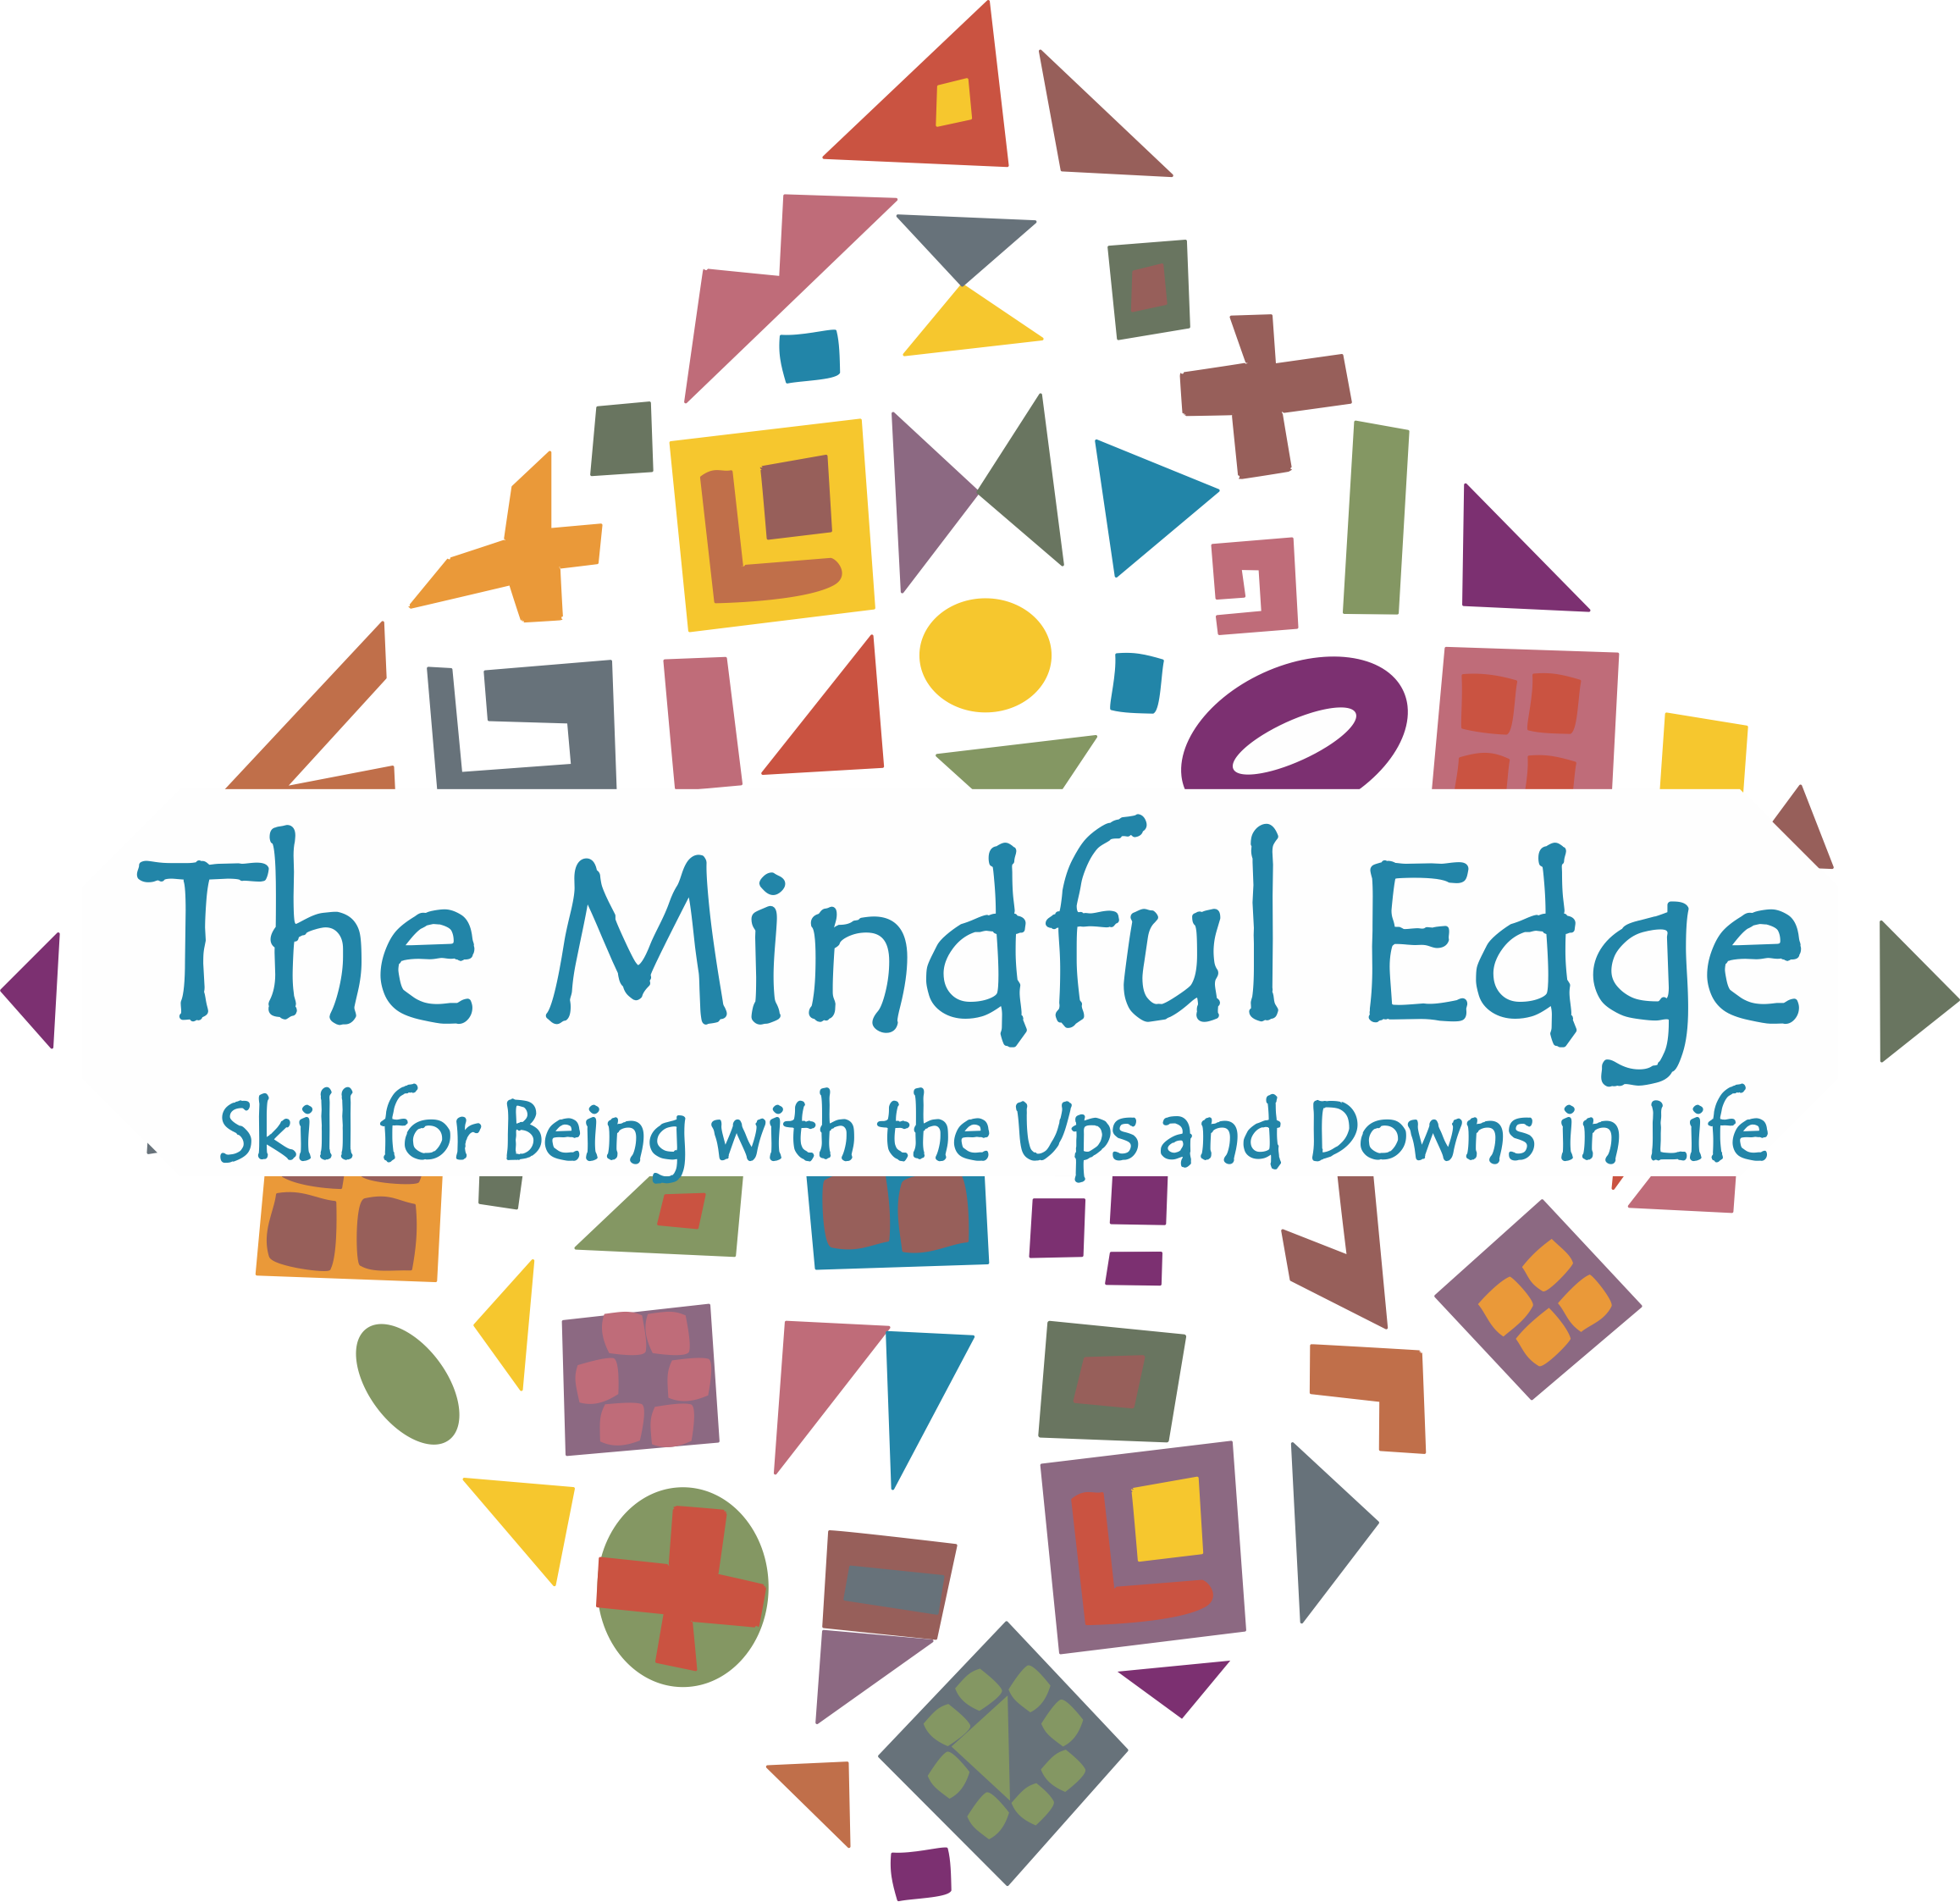 The Mindful Edge